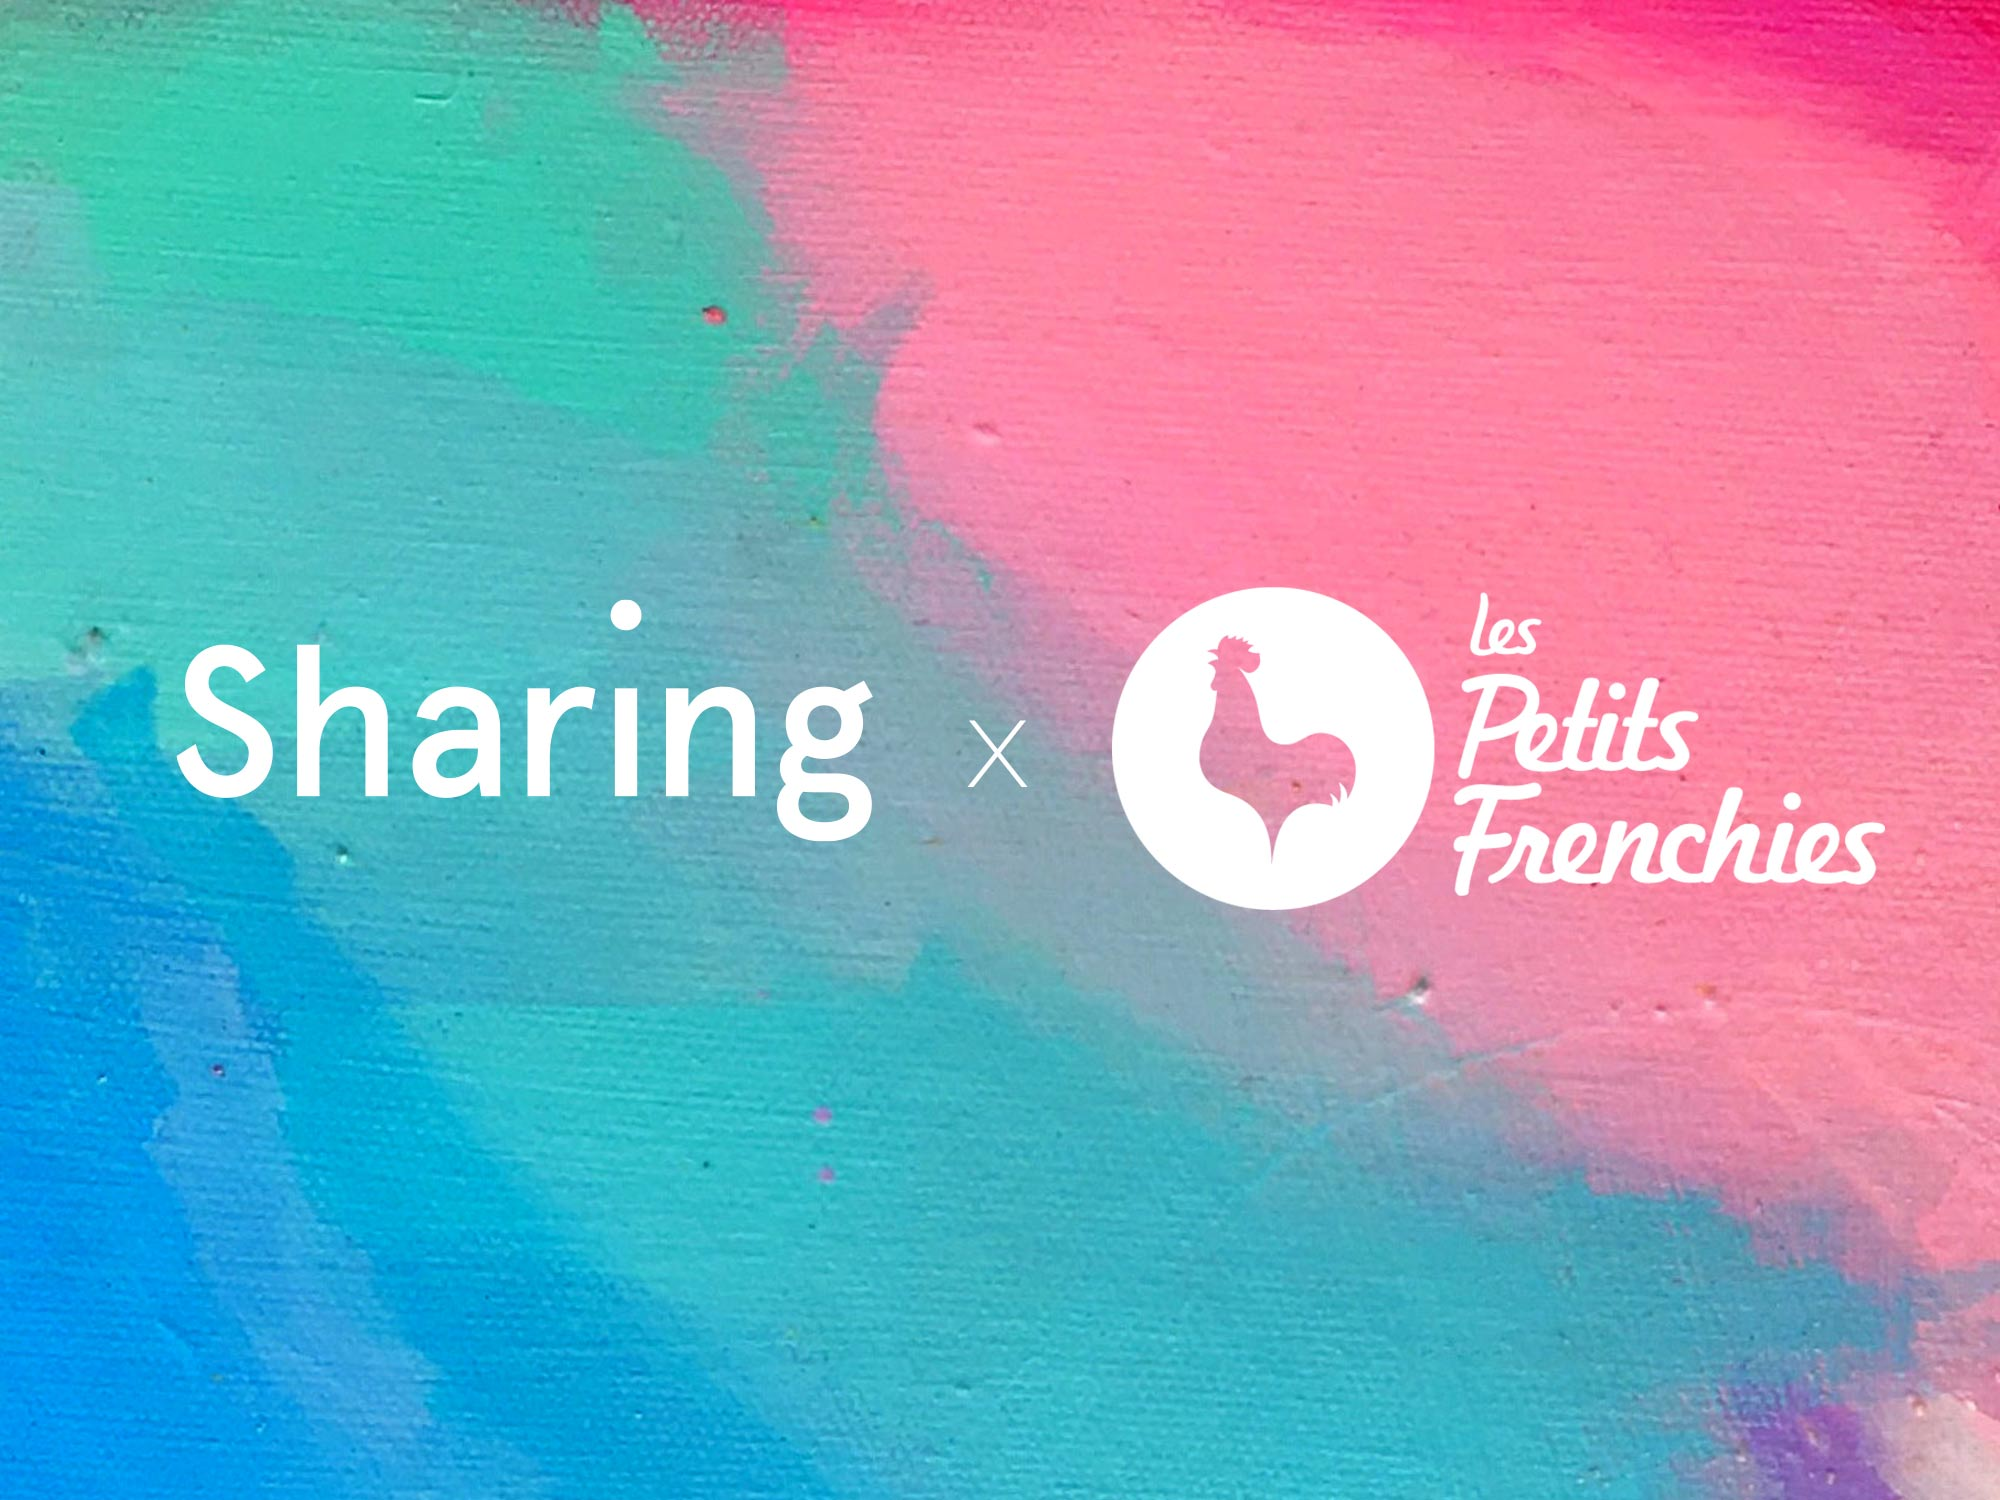 Agence Sharing et Les Petits Frenchies